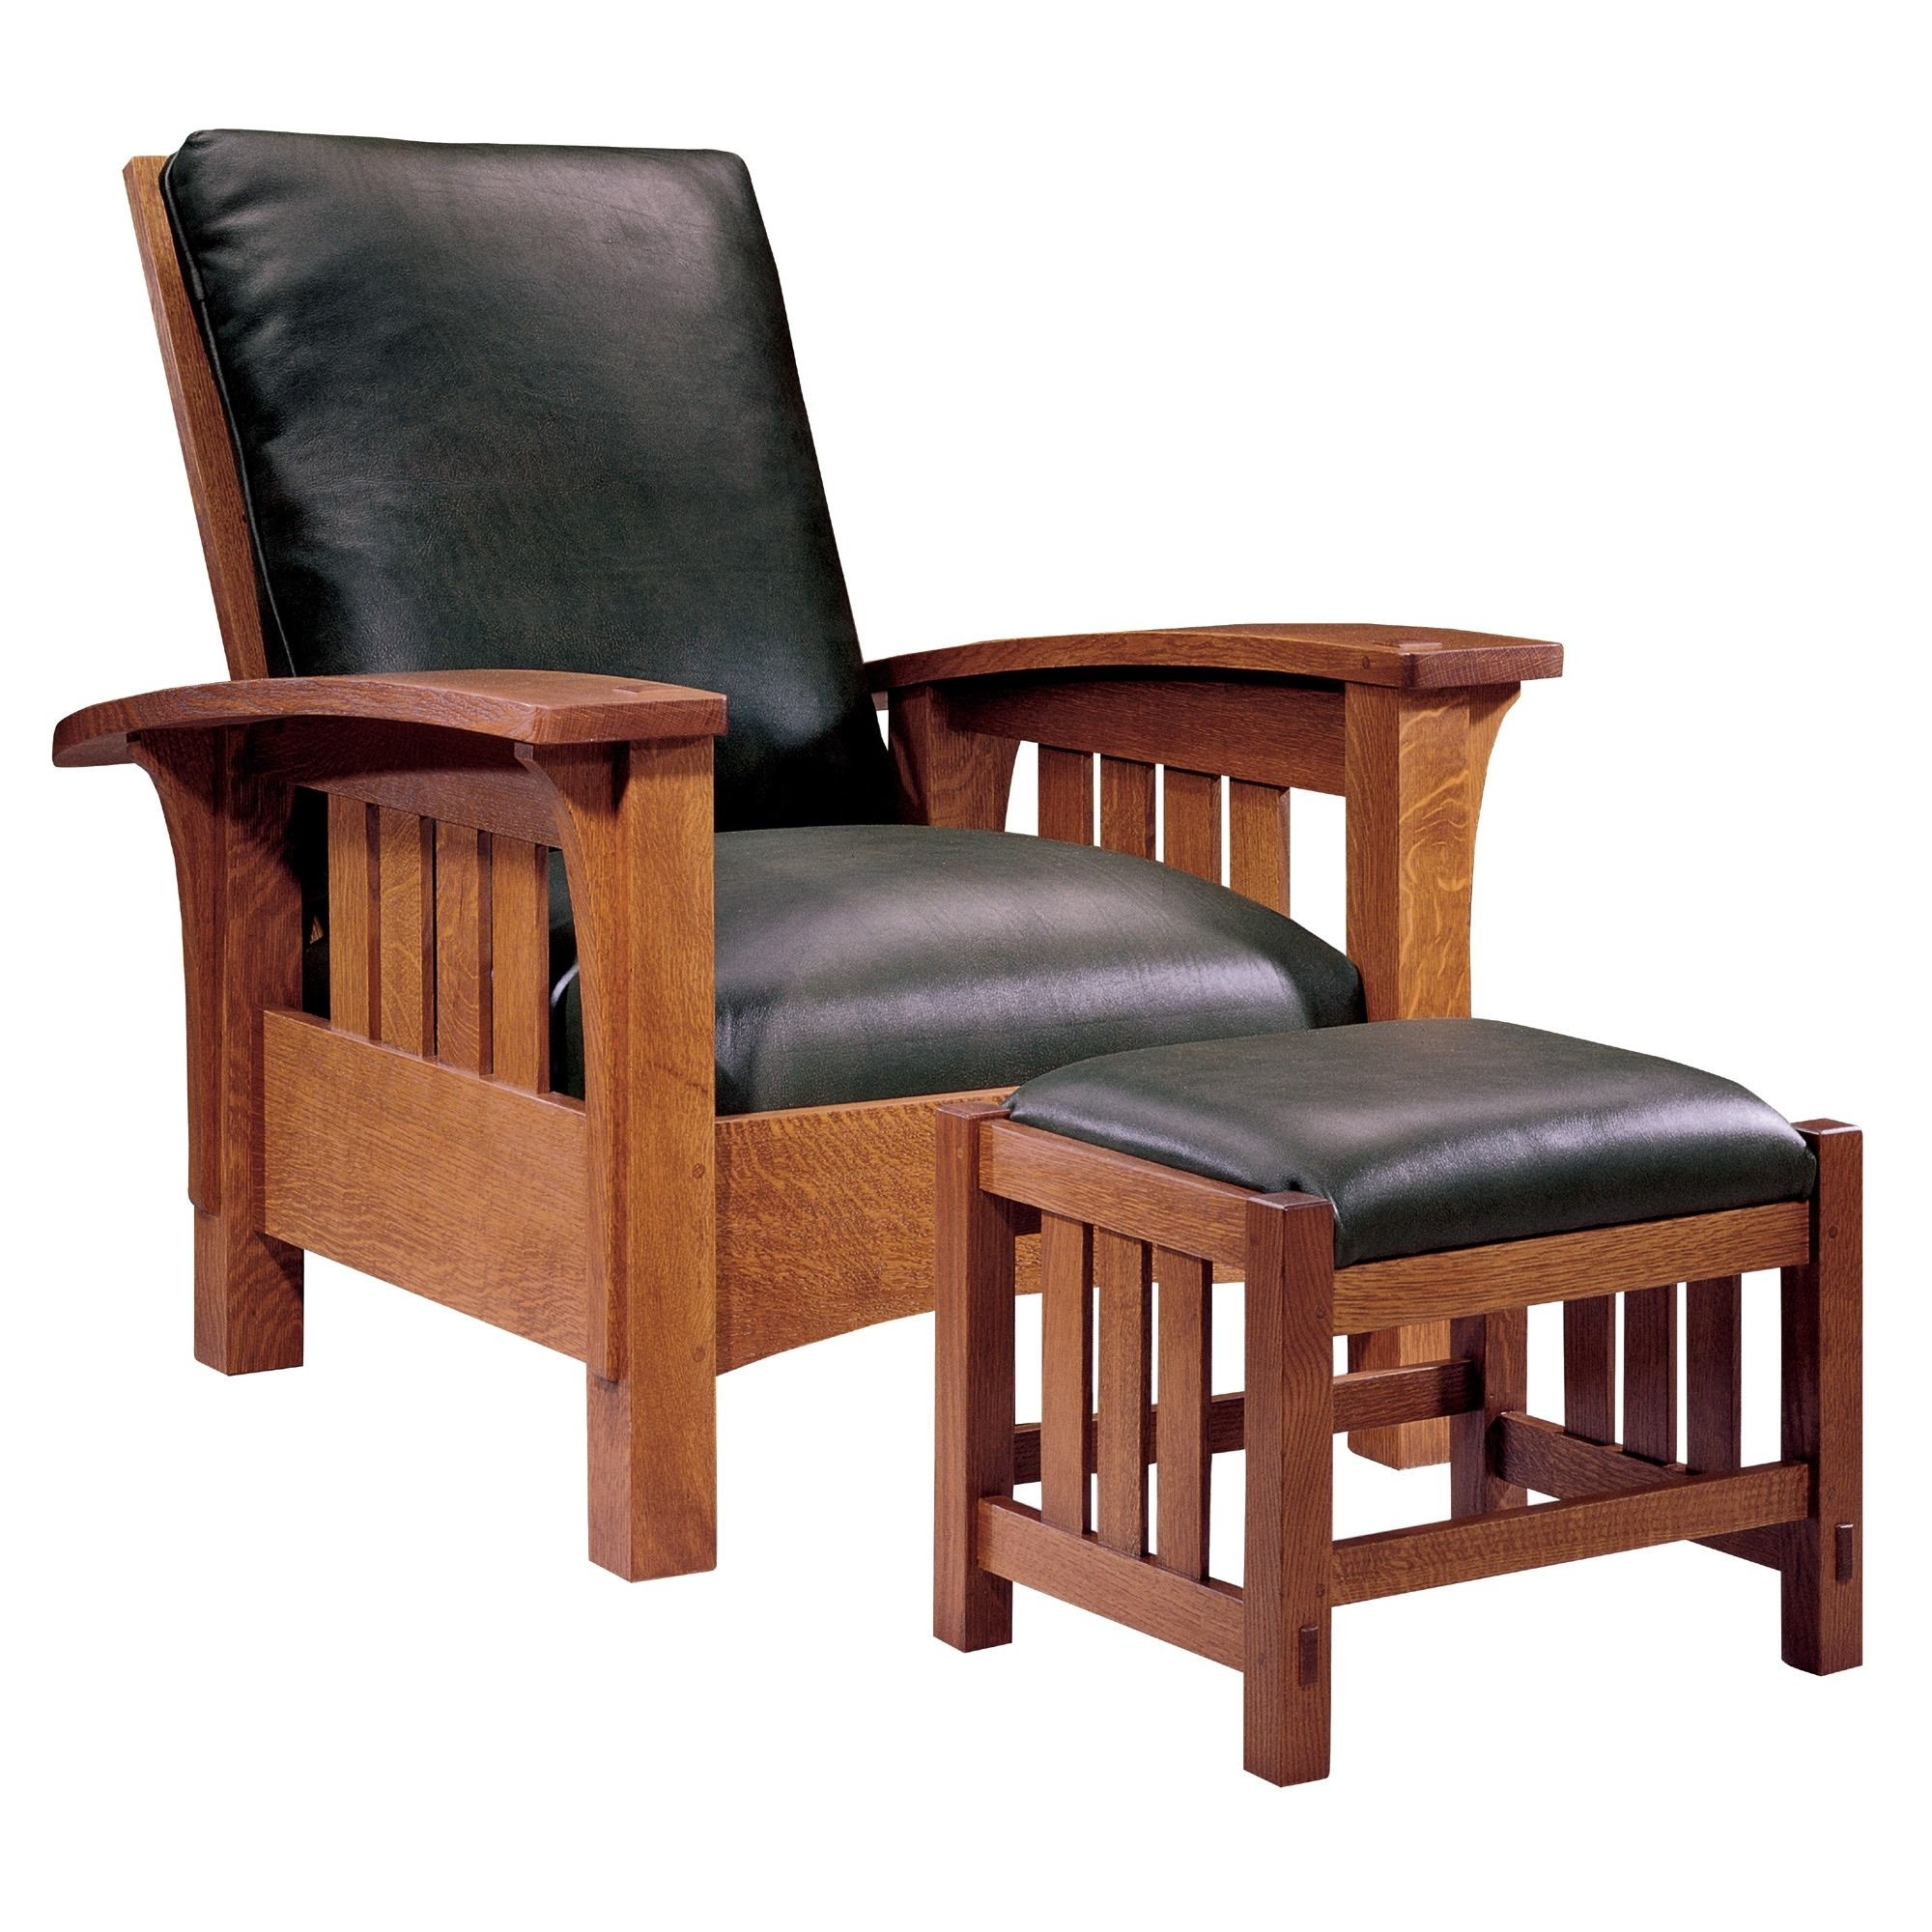 Beau Mission Style Arm Chair   Foter